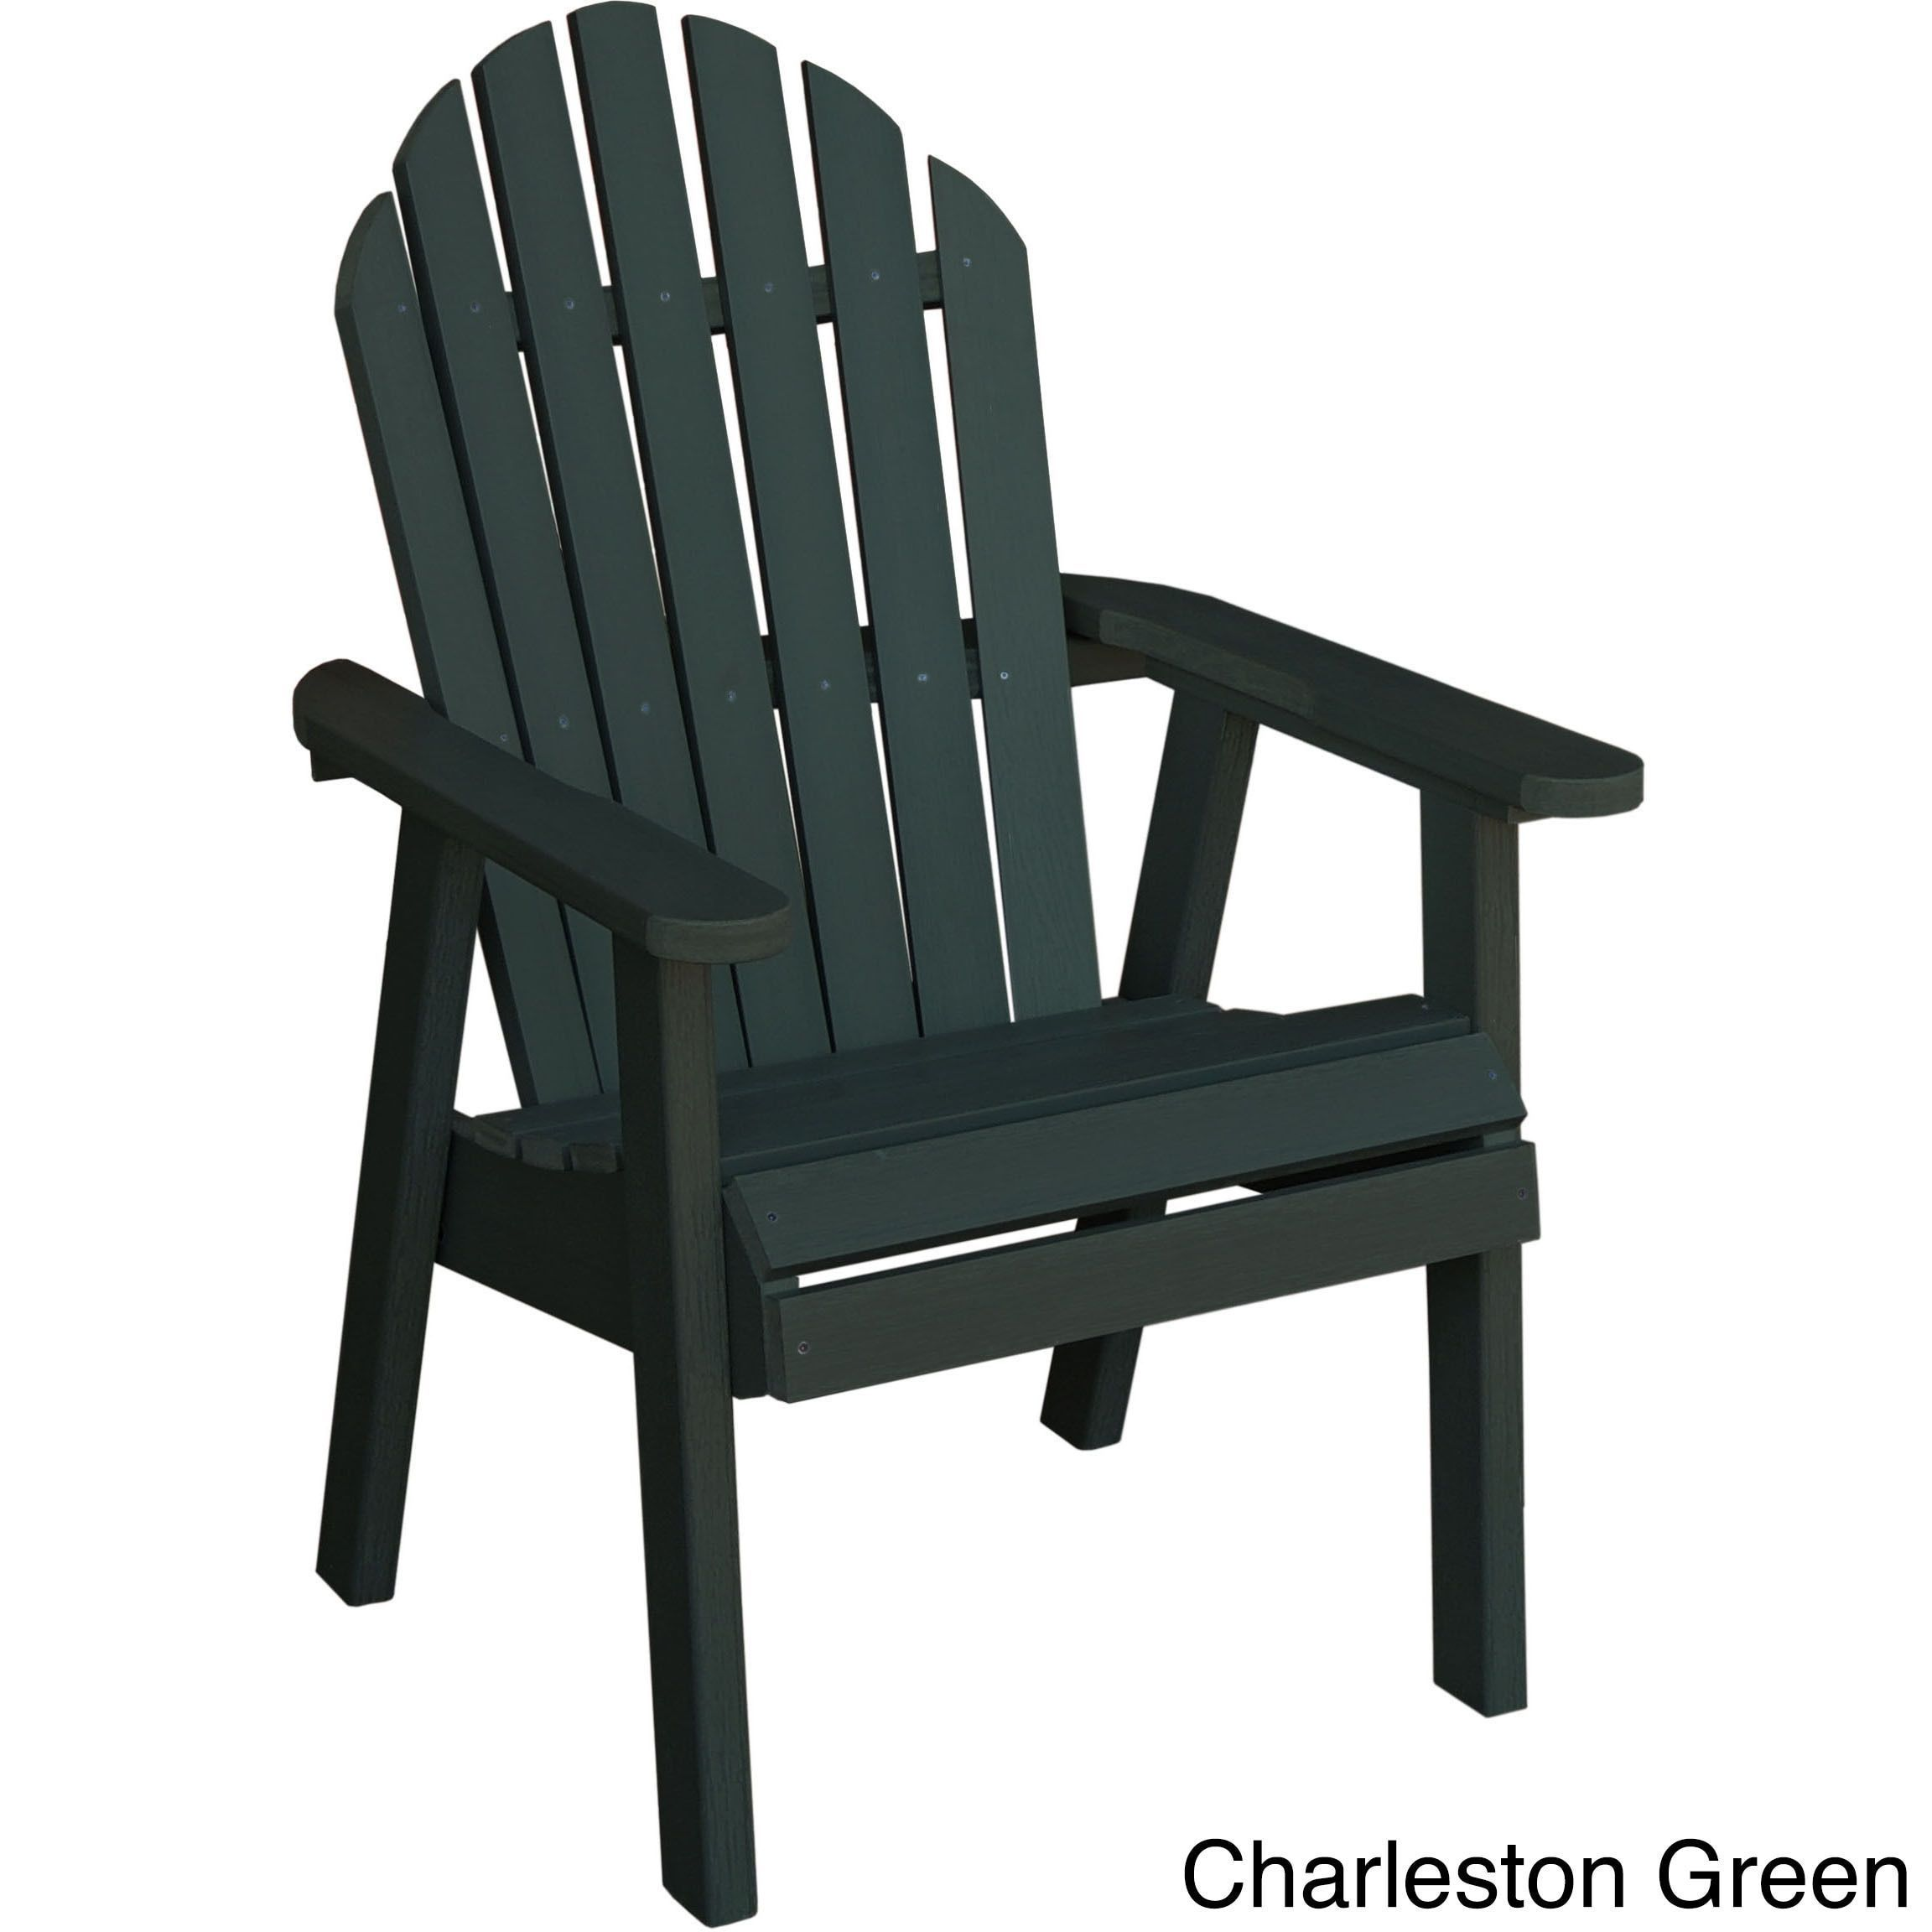 Marine Deck Chairs Polyester Banquet Chair Cover White Highwood Eco Friendly Grade Synthetic Wood Hamilton Green Size Single Patio Furniture Plastic